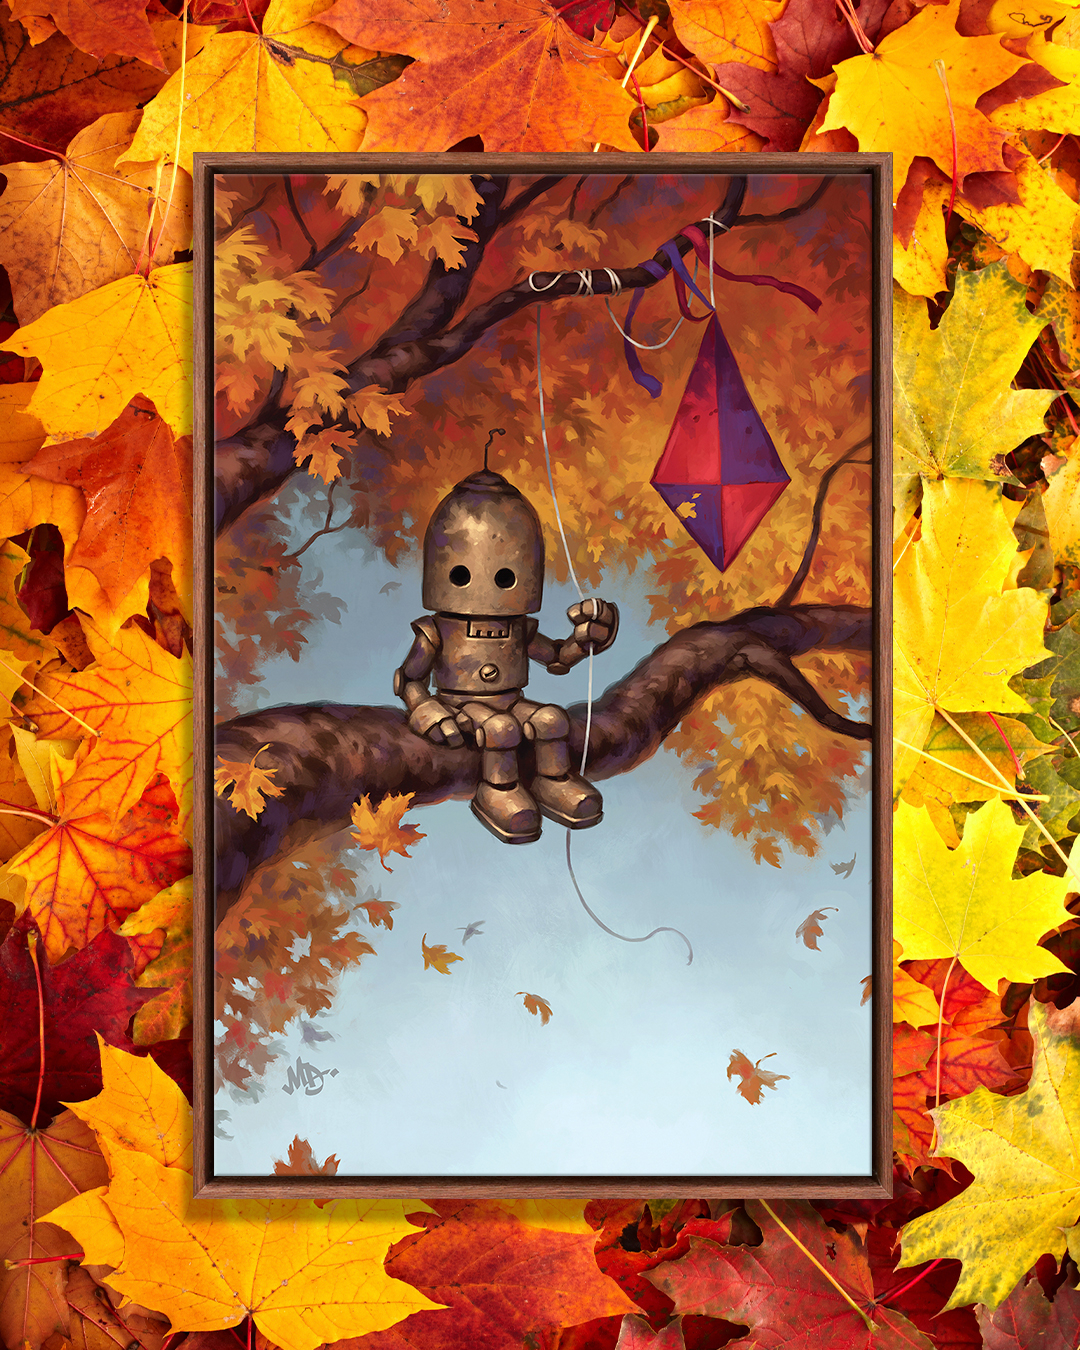 Robot in a tree branch with a kite by iCanvas artist Matt Dixon